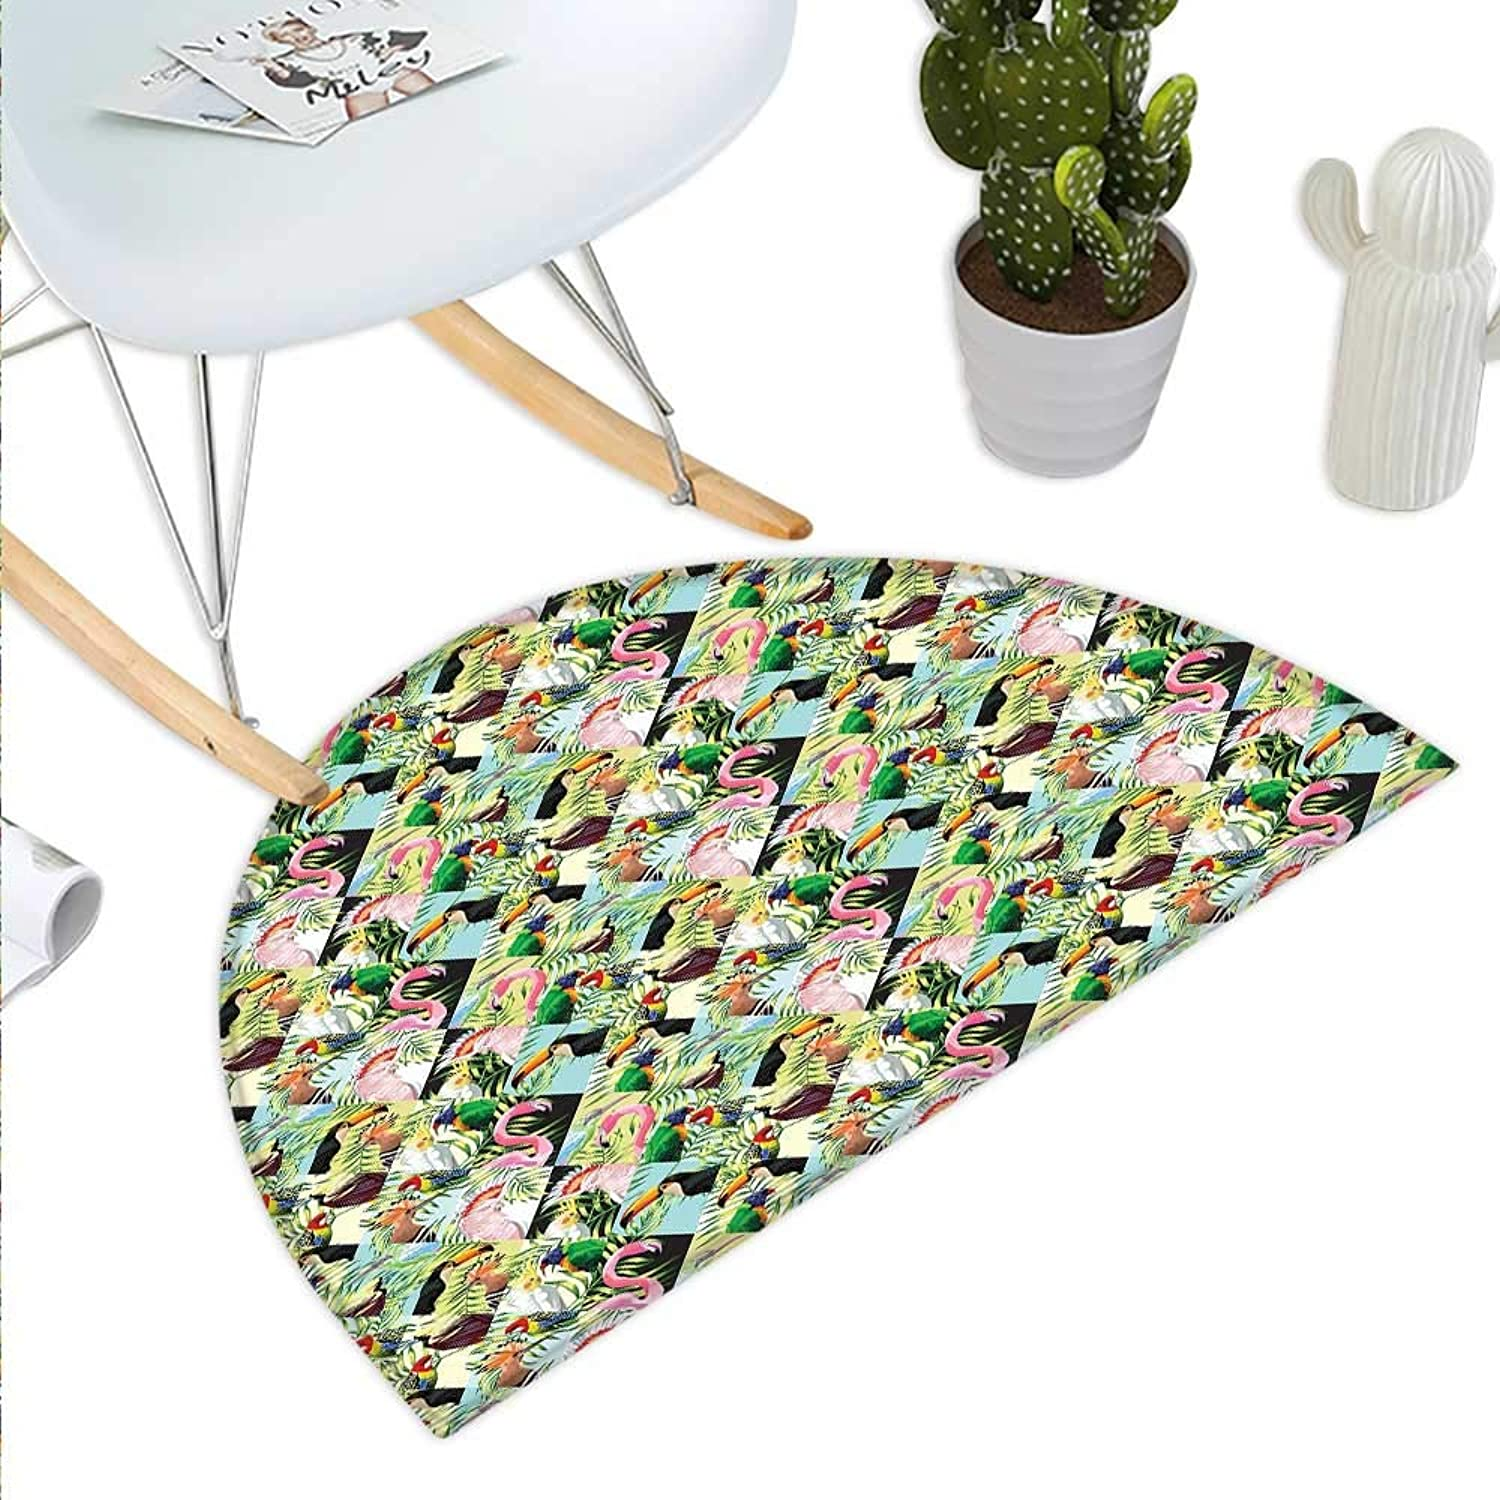 Luau Semicircle Doormat Tropical Climate Wildlife Jungle Inspired Patchwork Style Pattern with Birds Parred Halfmoon doormats H 43.3  xD 64.9  Multicolor